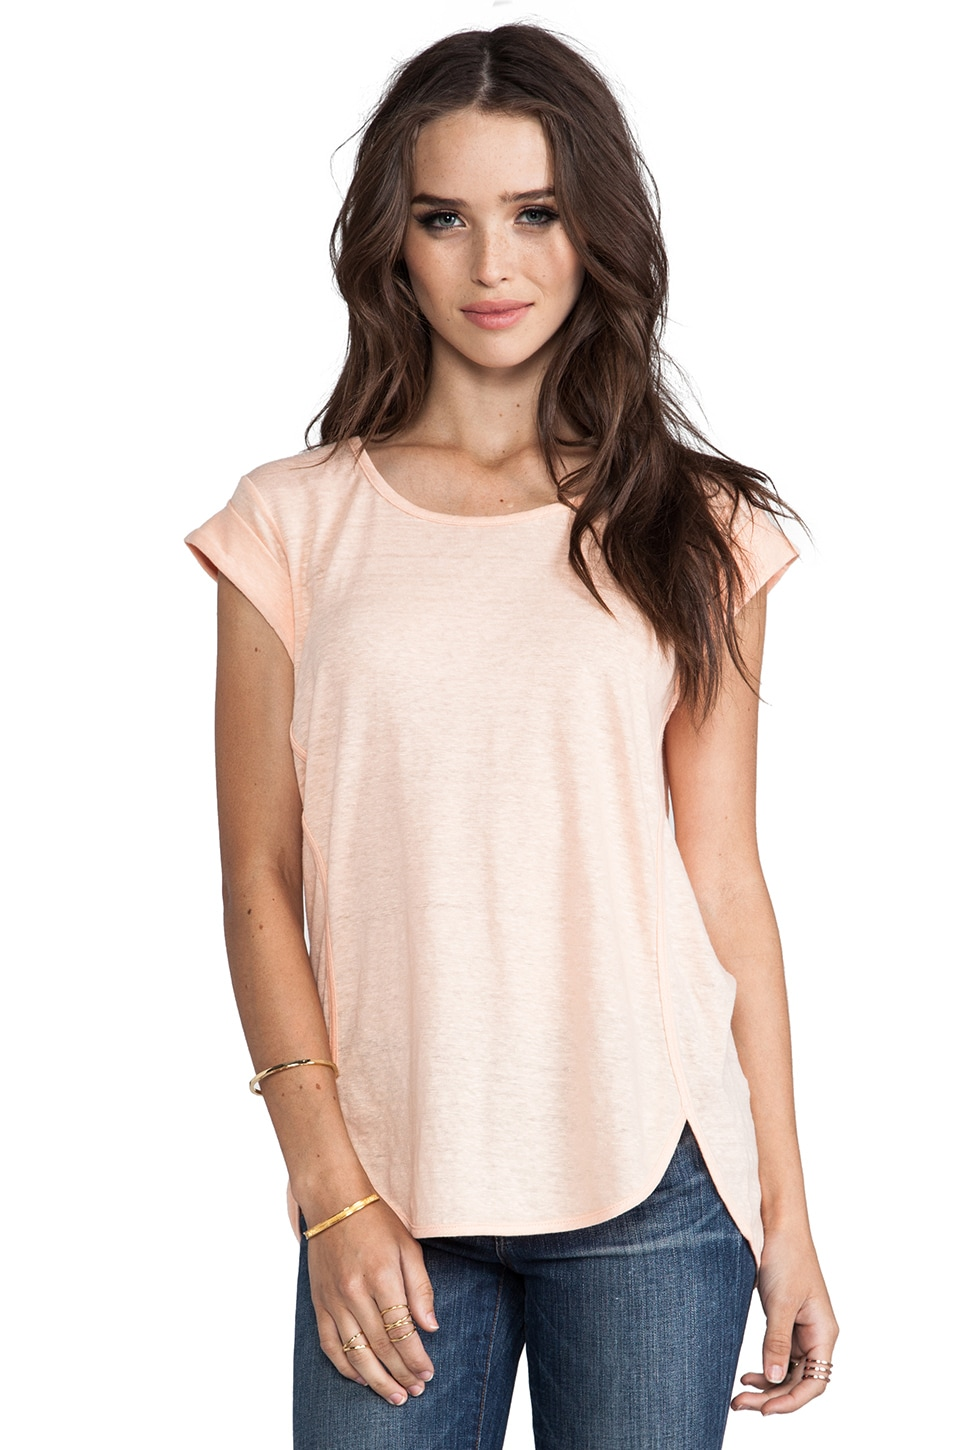 Marc by Marc Jacobs Carmen Tee in Pastel Tangerine